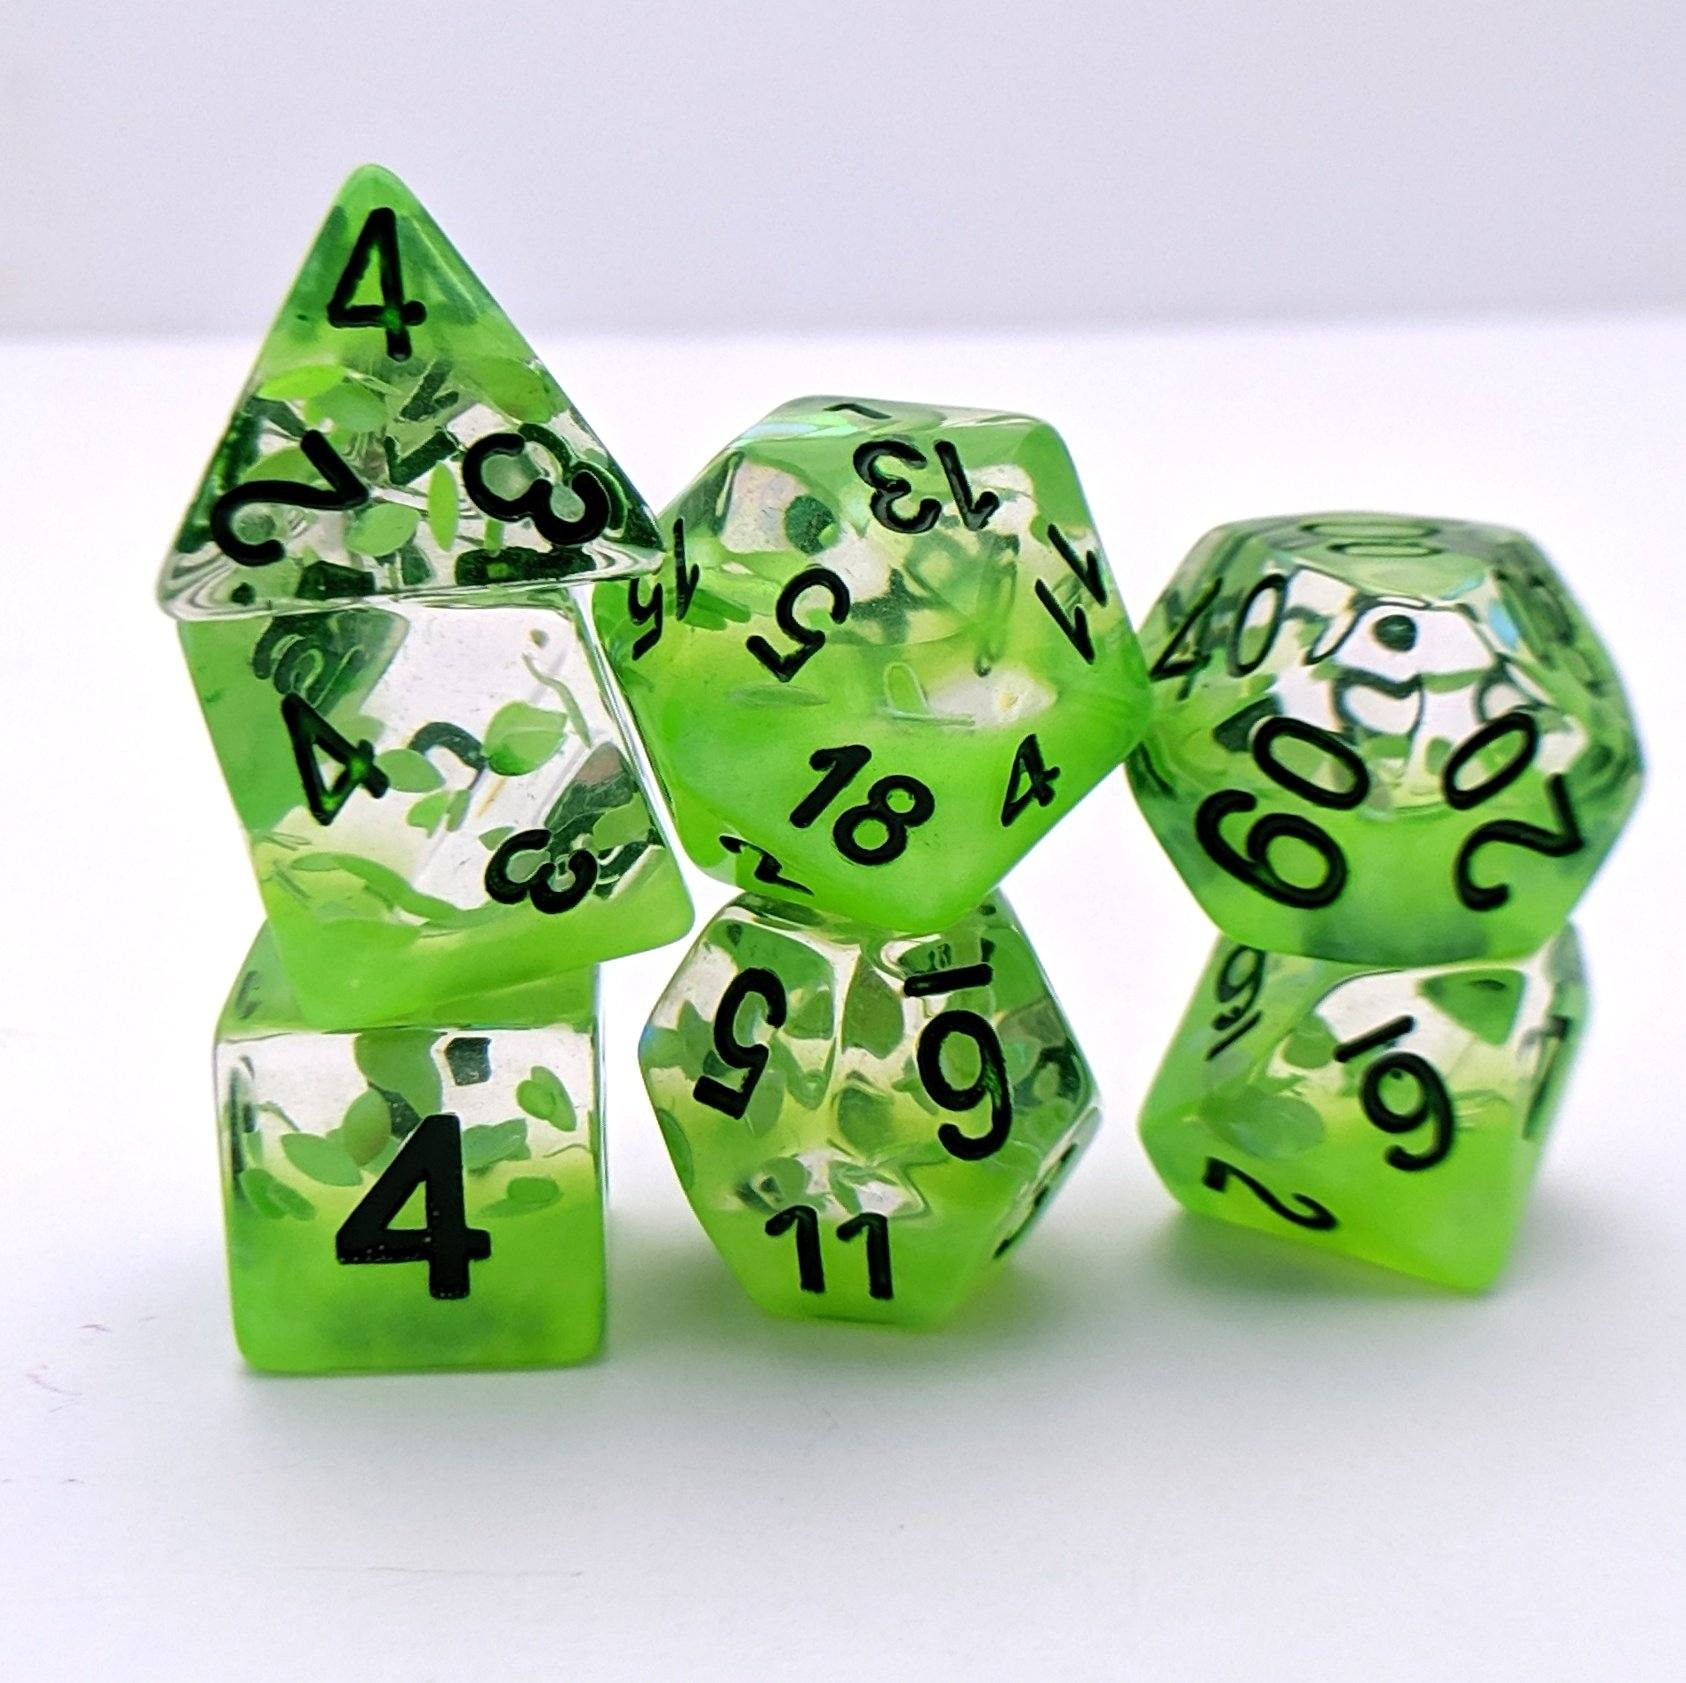 Plant Growth DnD Dice Set, Green Leaves Translucent Glitter Dice